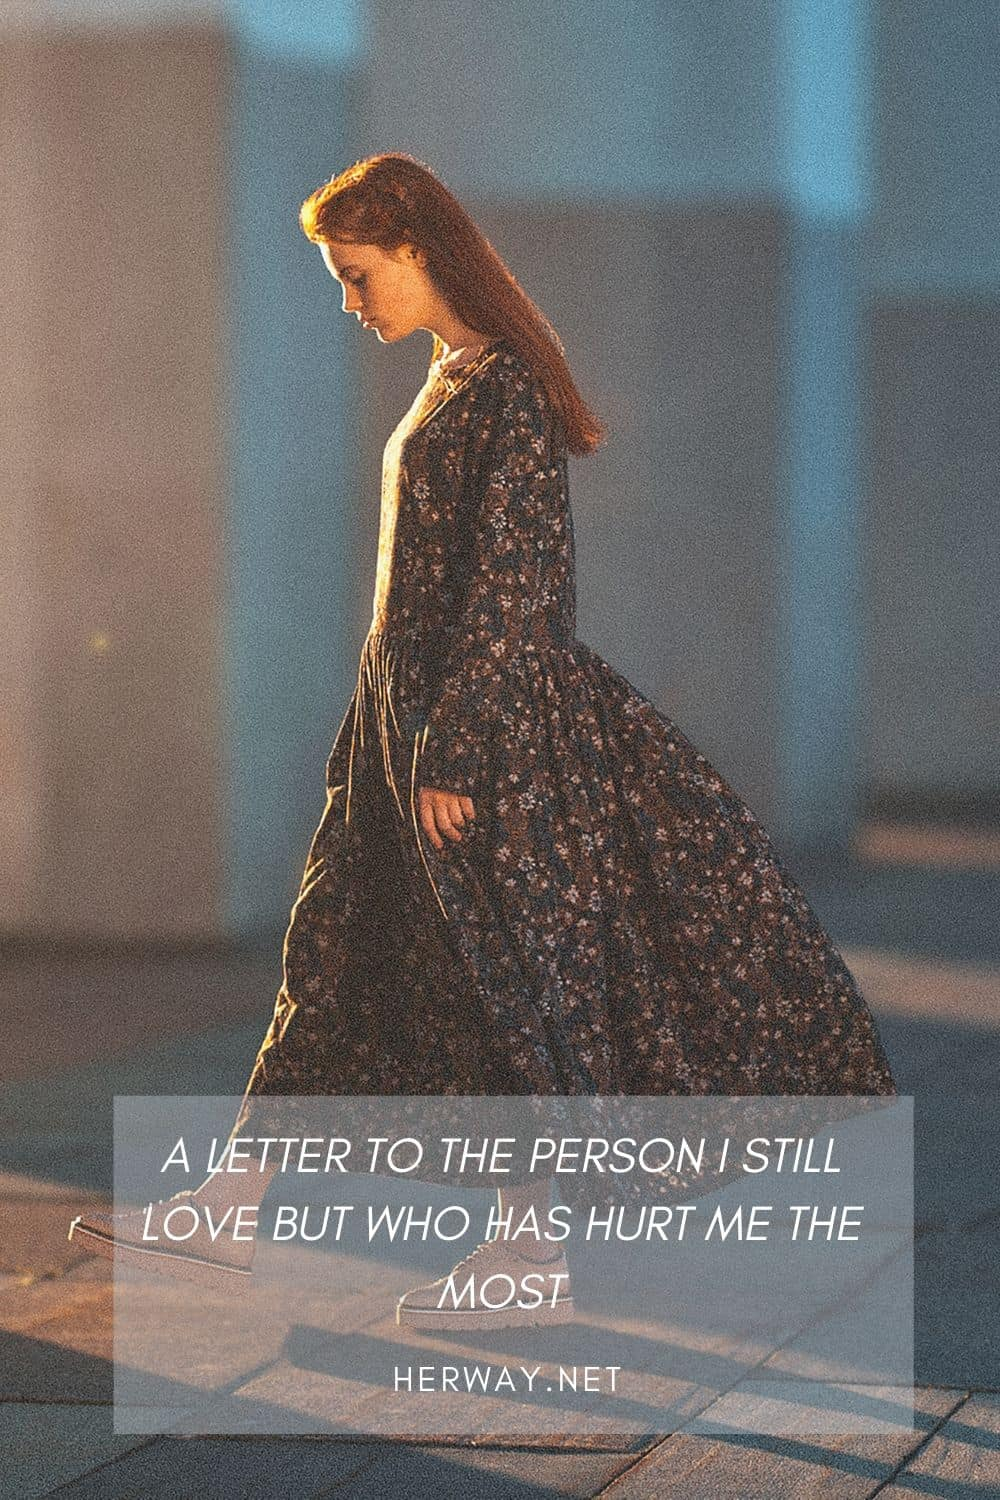 A Letter To The Person I Still Love But Who Has Hurt Me The Most